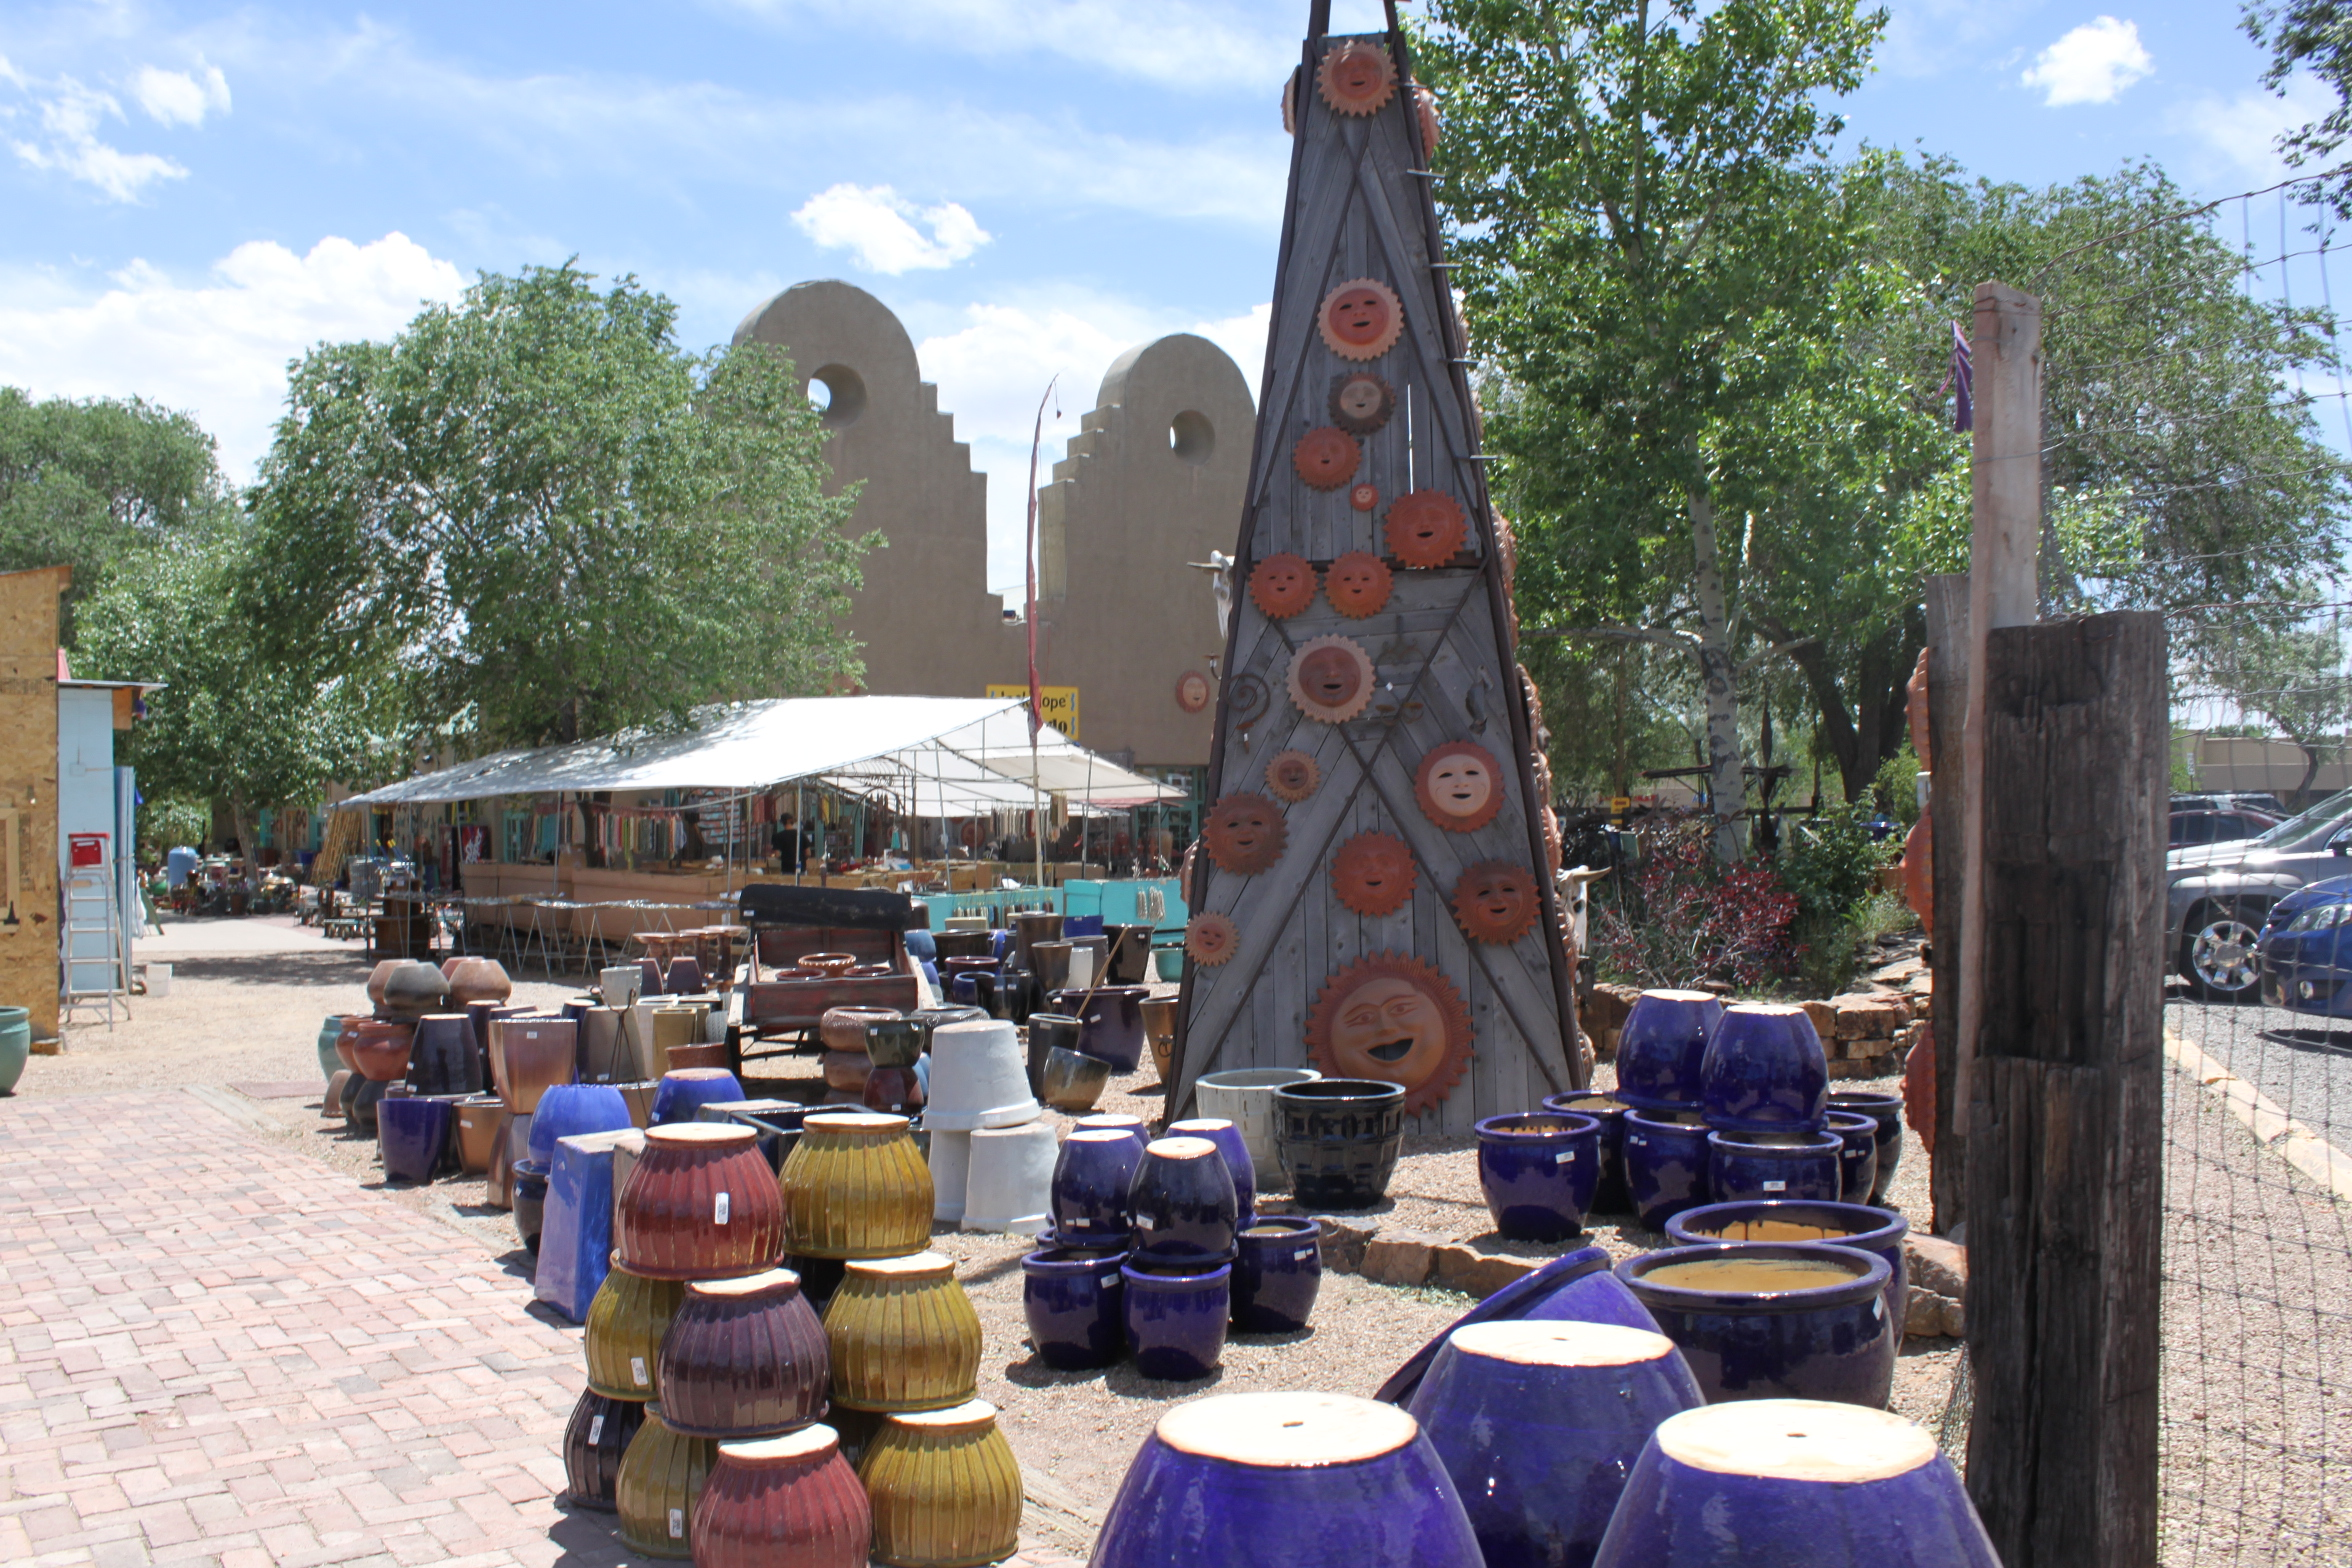 I Learned My Geography from Musicals – Santa Fe, New Mexico